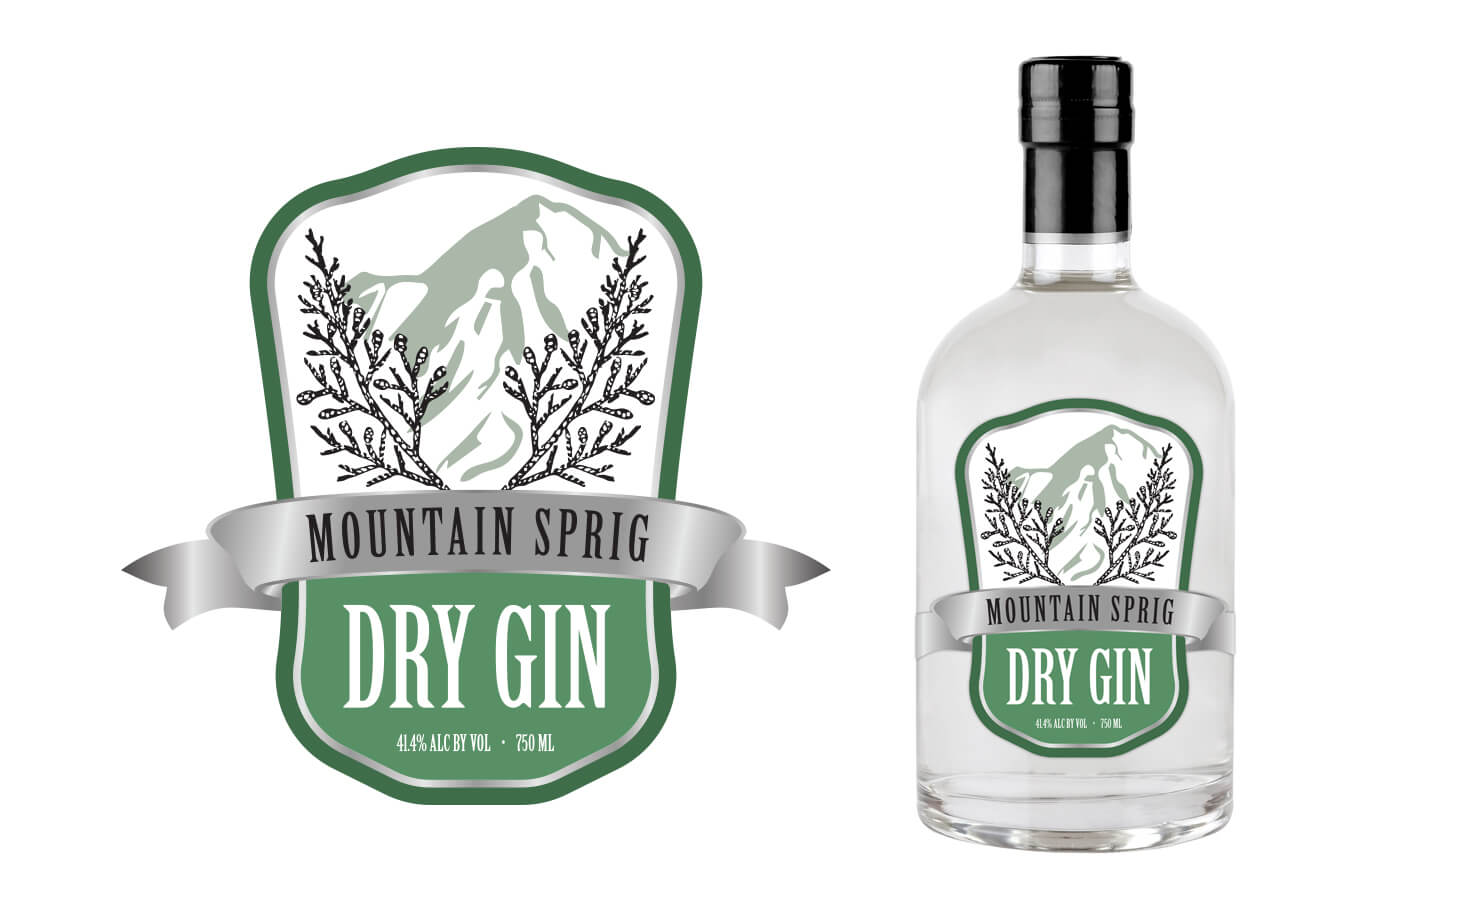 Mountain Sprig Gin